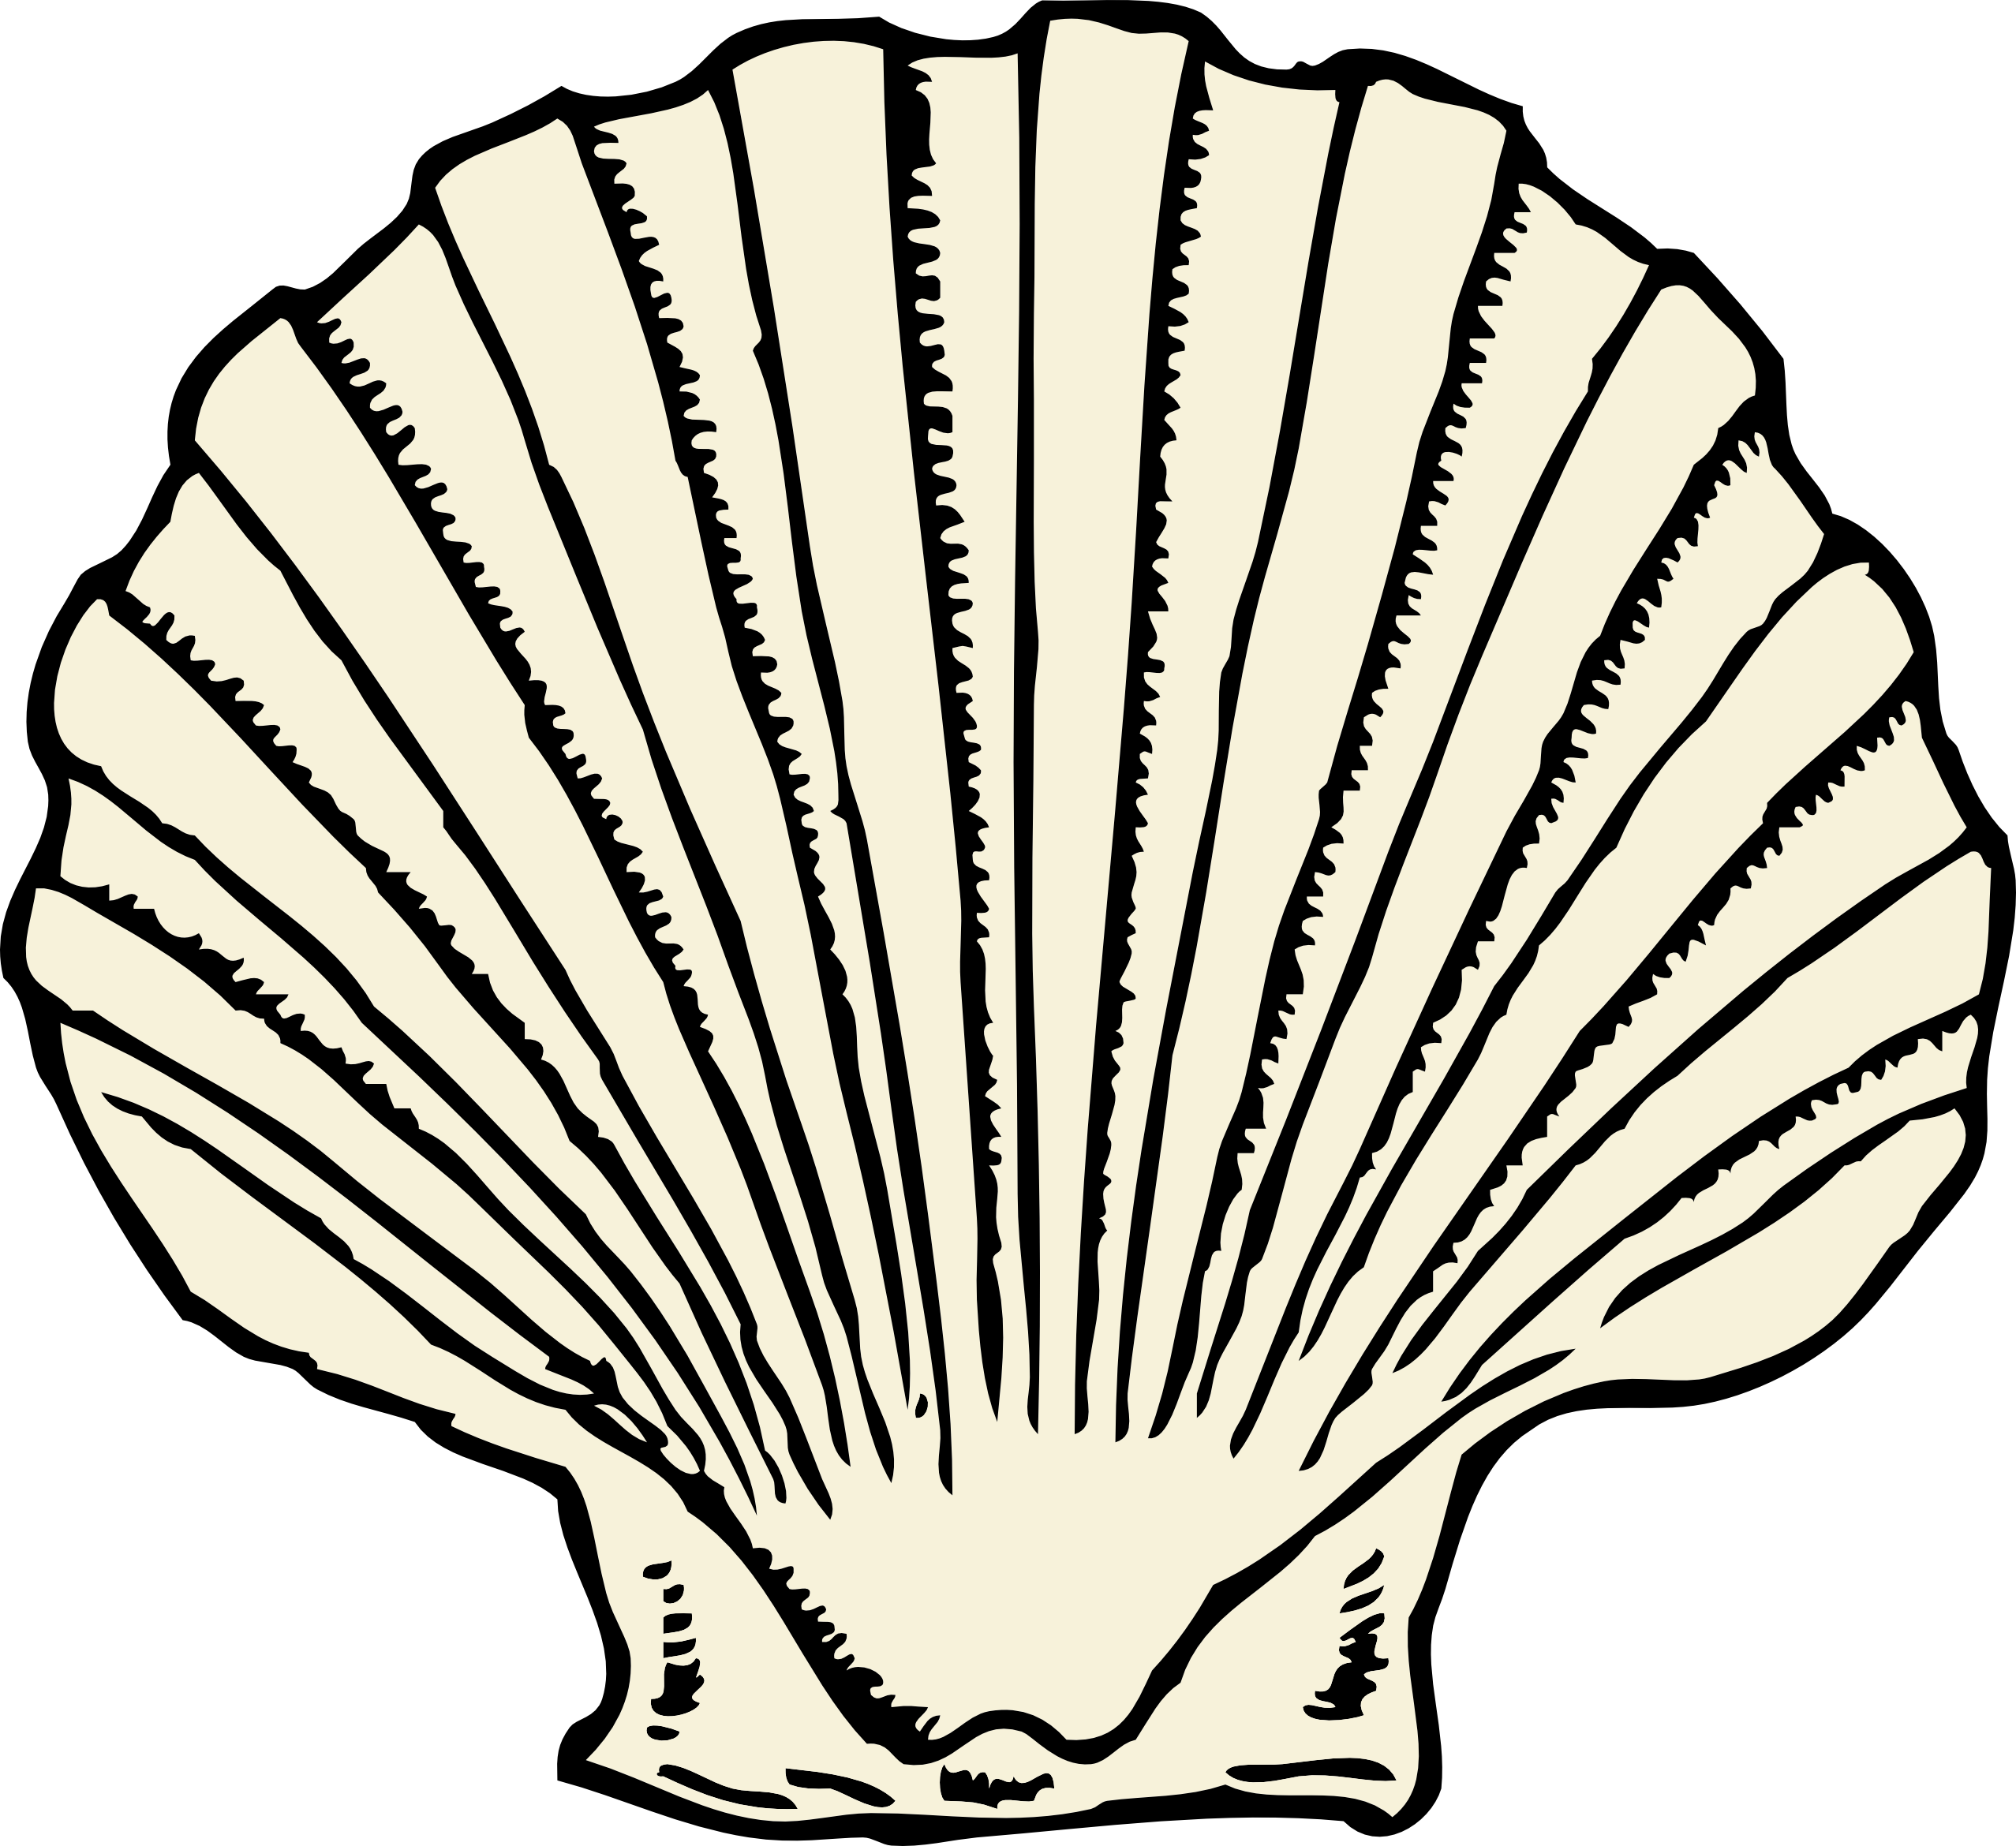 Shells Colouring - ClipArt Best